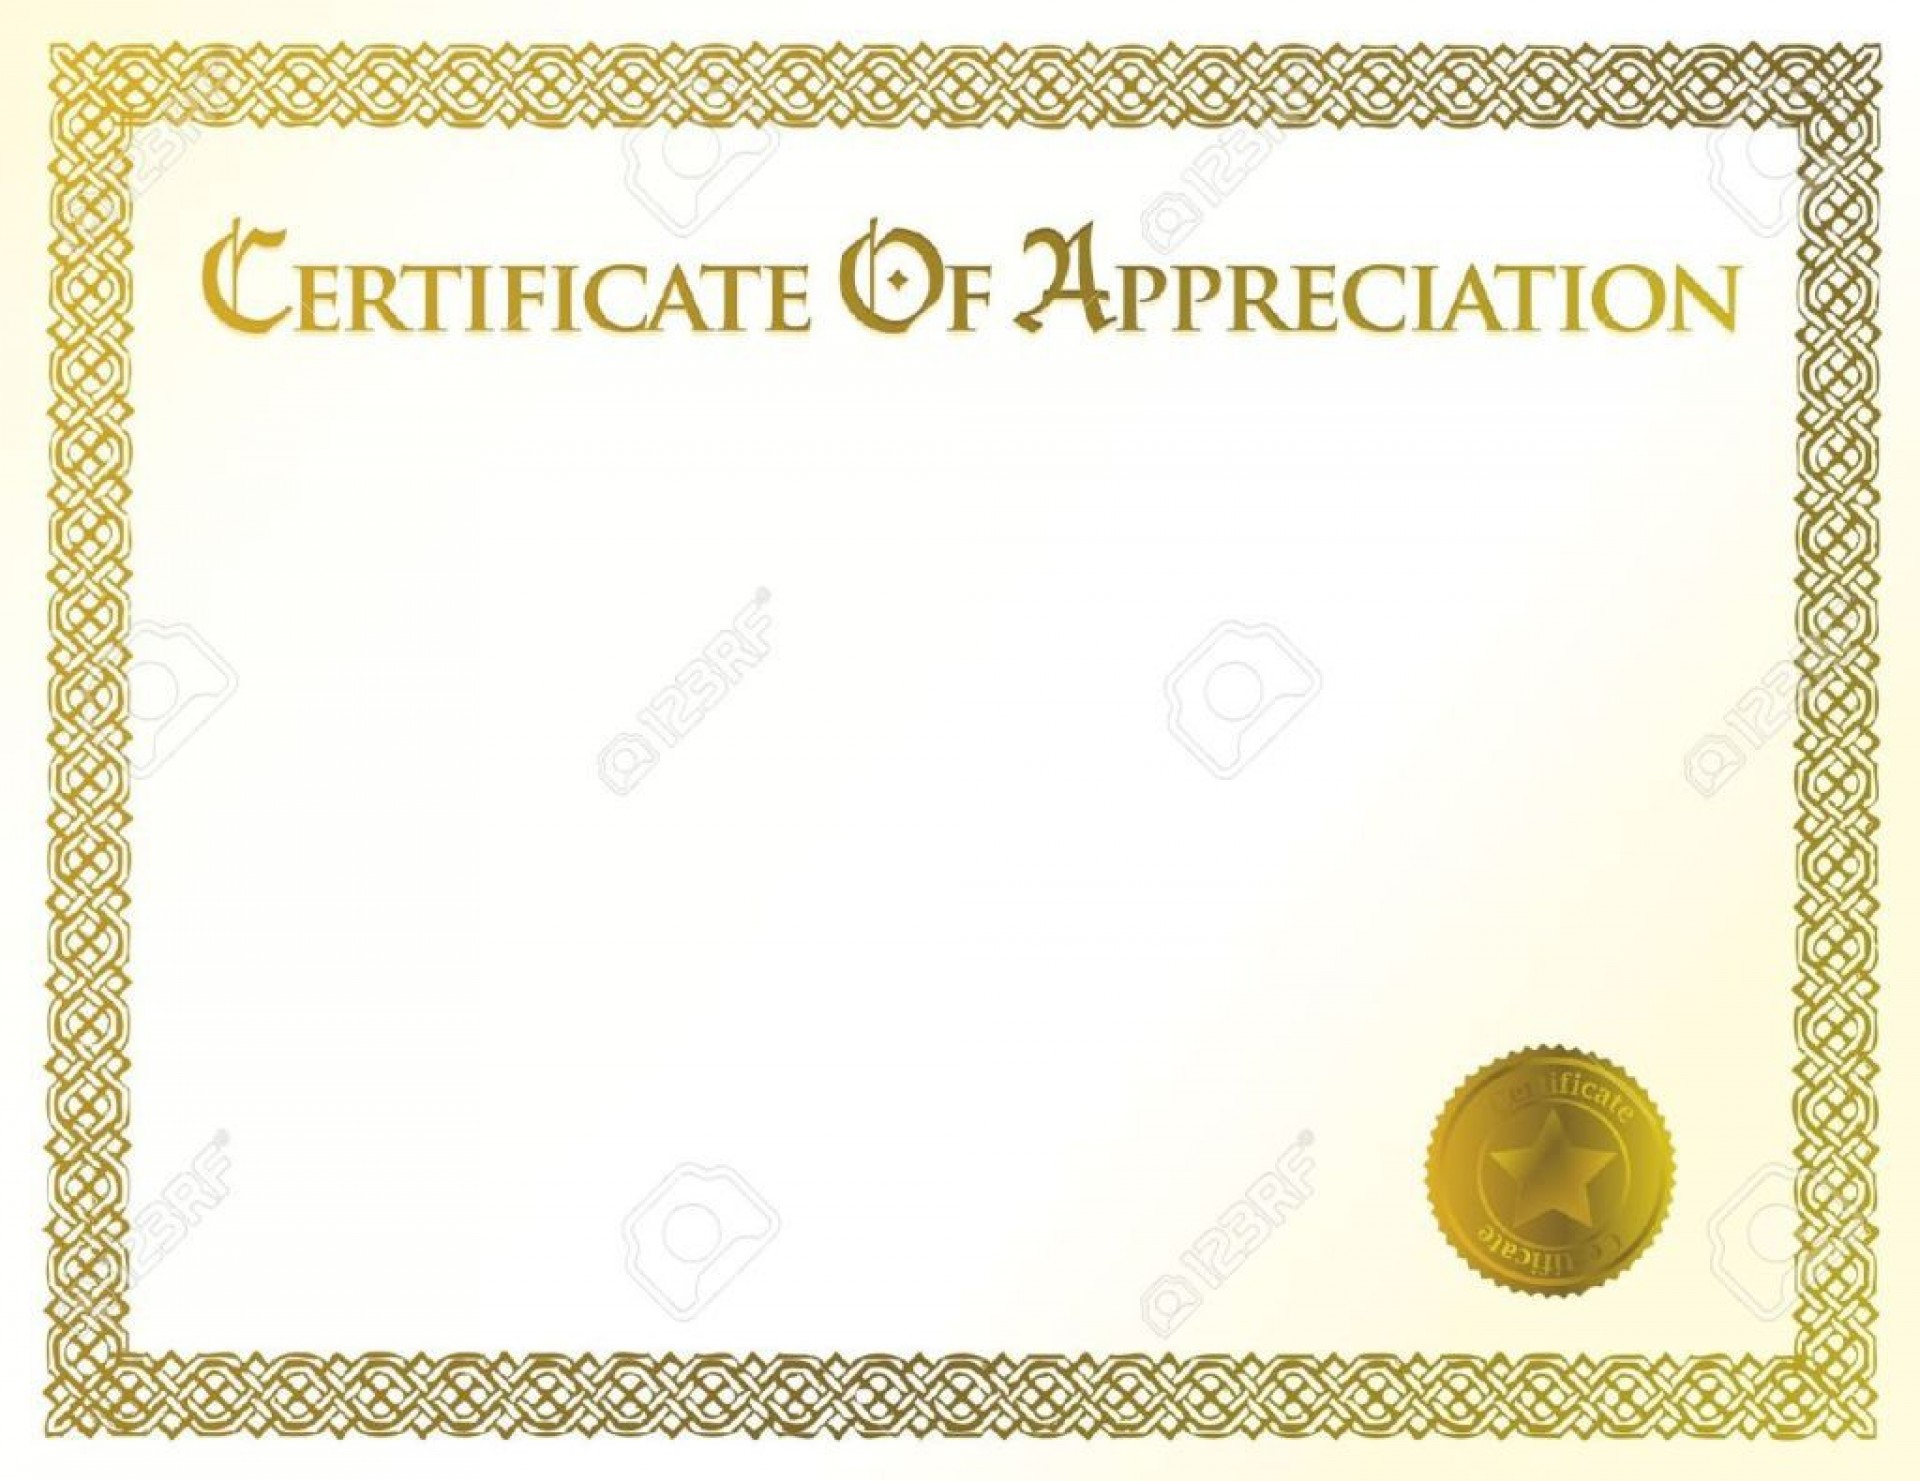 012 Wondrou Certificate Of Appreciation Template Free Sample  Microsoft Word Download Publisher Editable1920